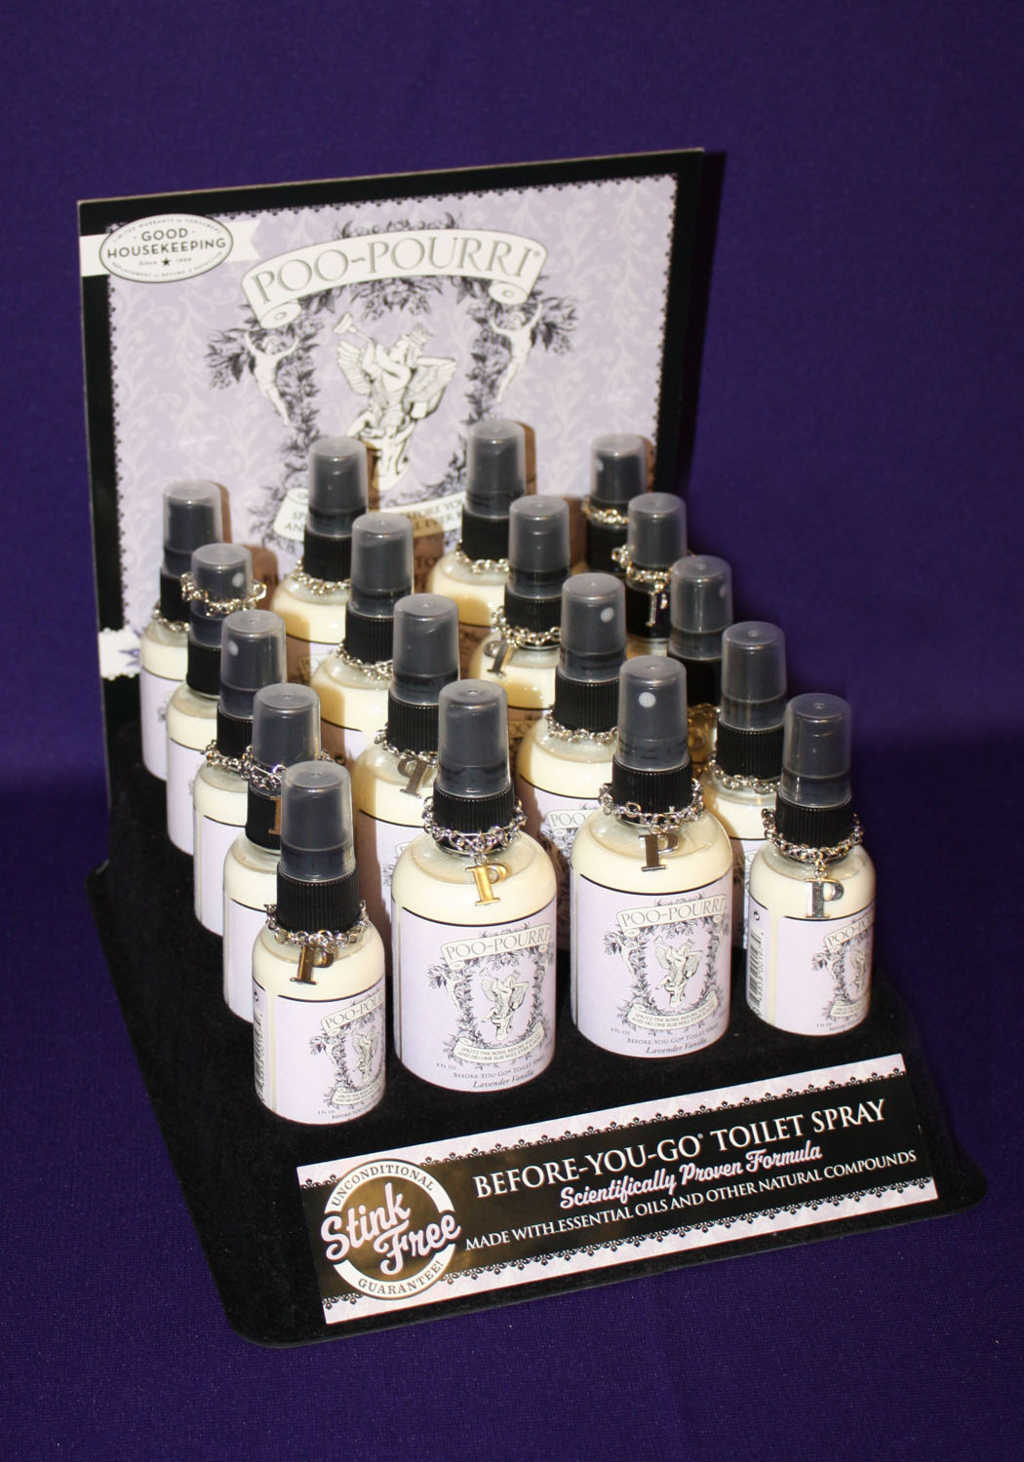 Before You Go Toilet Spray by Poo-Pourri Brand Available at Mon General Hospital Gift Shop